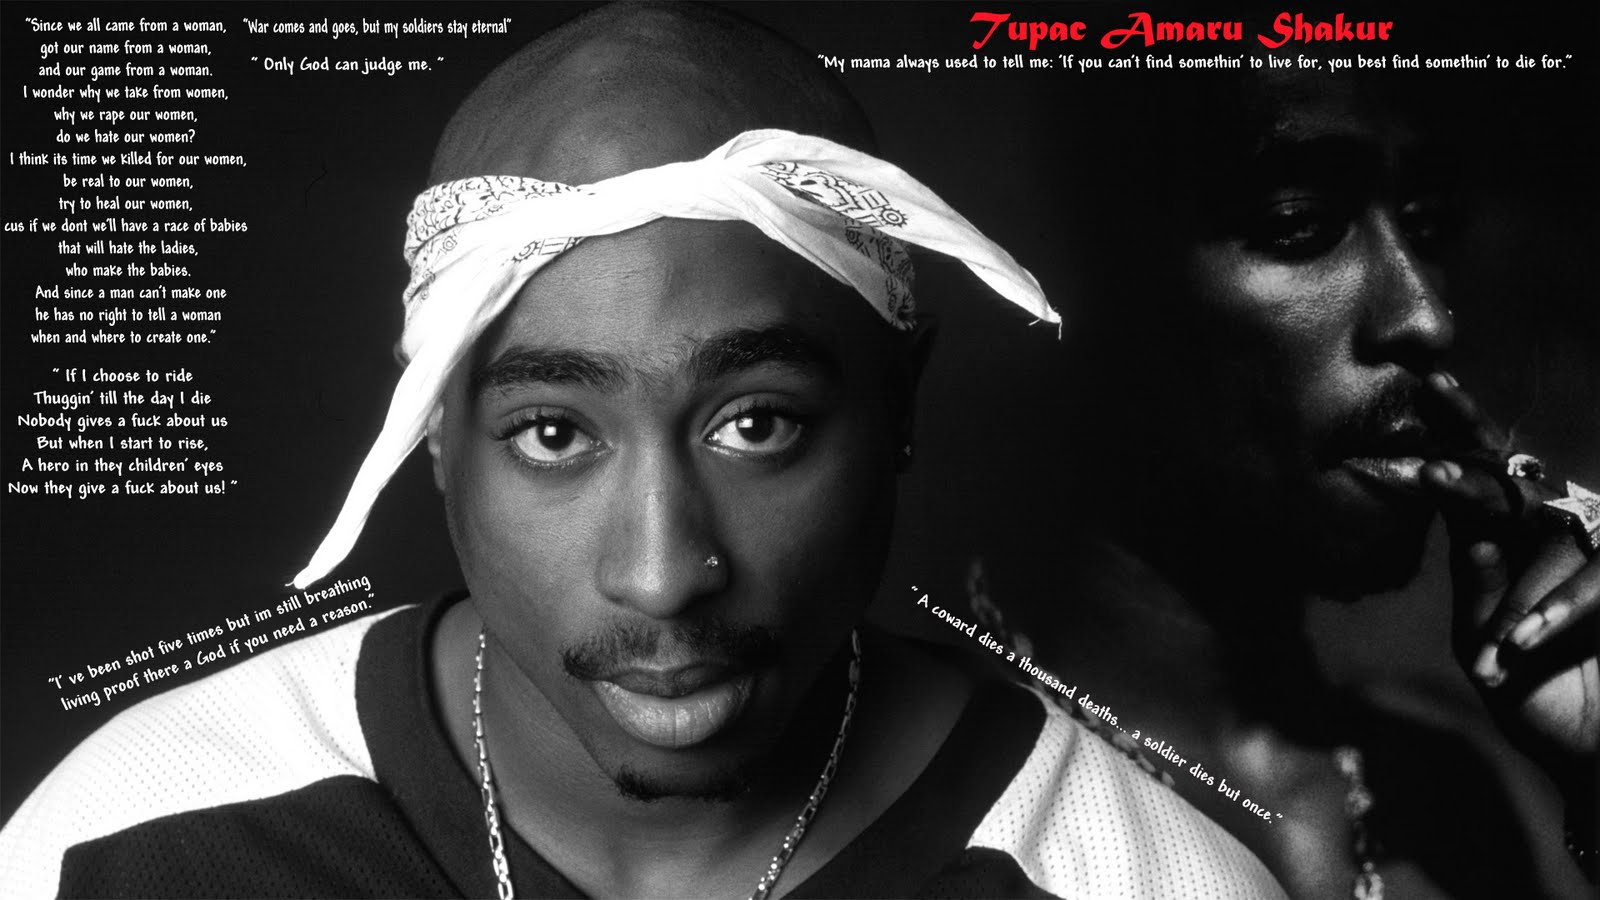 the life and music of tupac amaru shakur In 1997, the year after her son was fatally shot in las vegas, afeni shakur launched the tupac amaru shakur foundation, which hosted an annual performing arts day camp for inner city youth in the atlanta area she was inspired by how the gifted rapper, actor and one-time dancer studied at the.